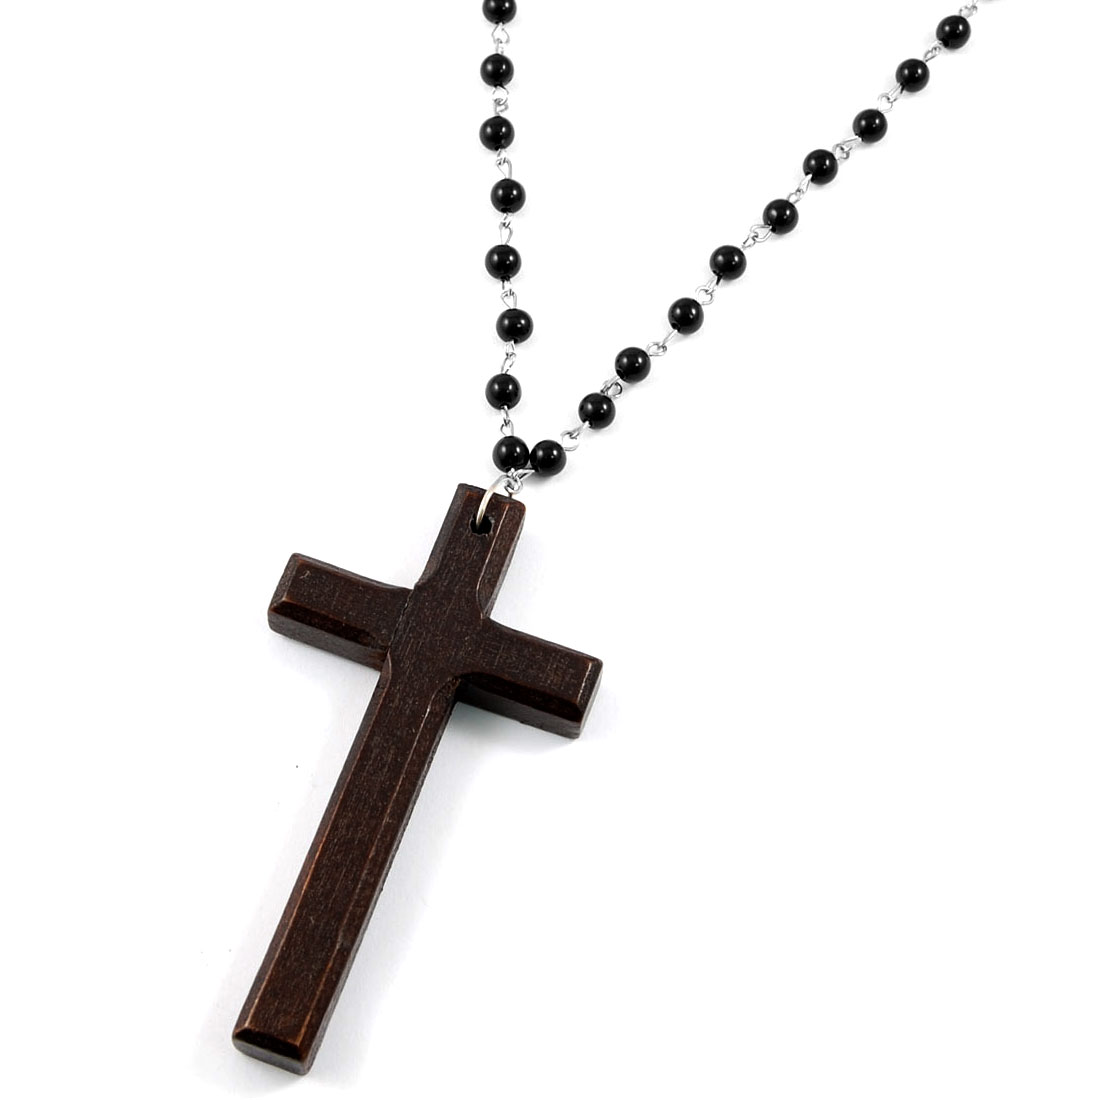 Wooden Cross Pendant Black Beads Linked Necklace for Women